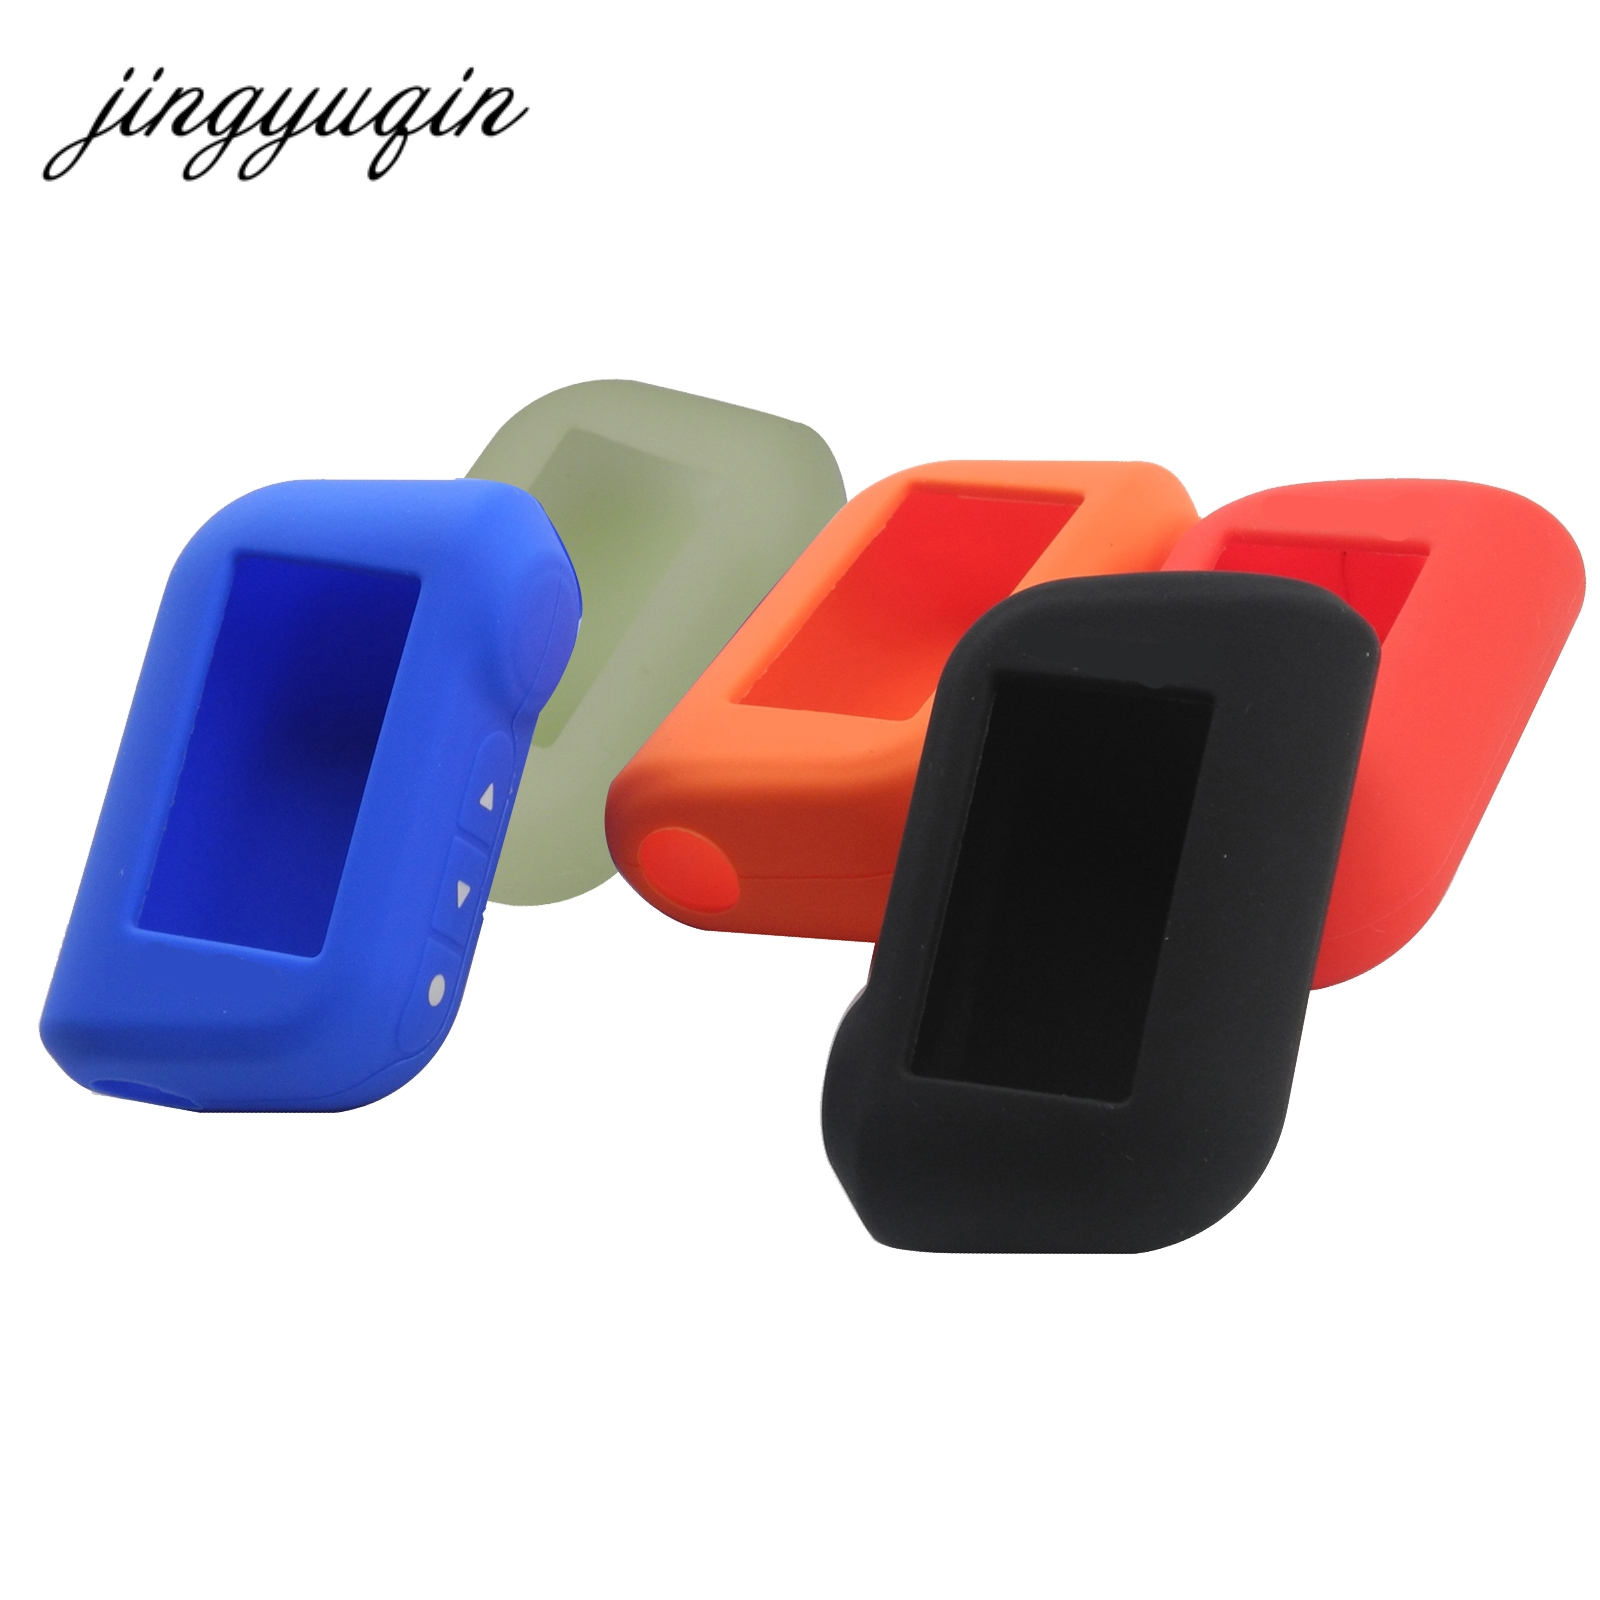 jingyuqin A93 Keychain Silicone Cover Key Case Prefect for Starline A93 Two Way Car Alarm Remote